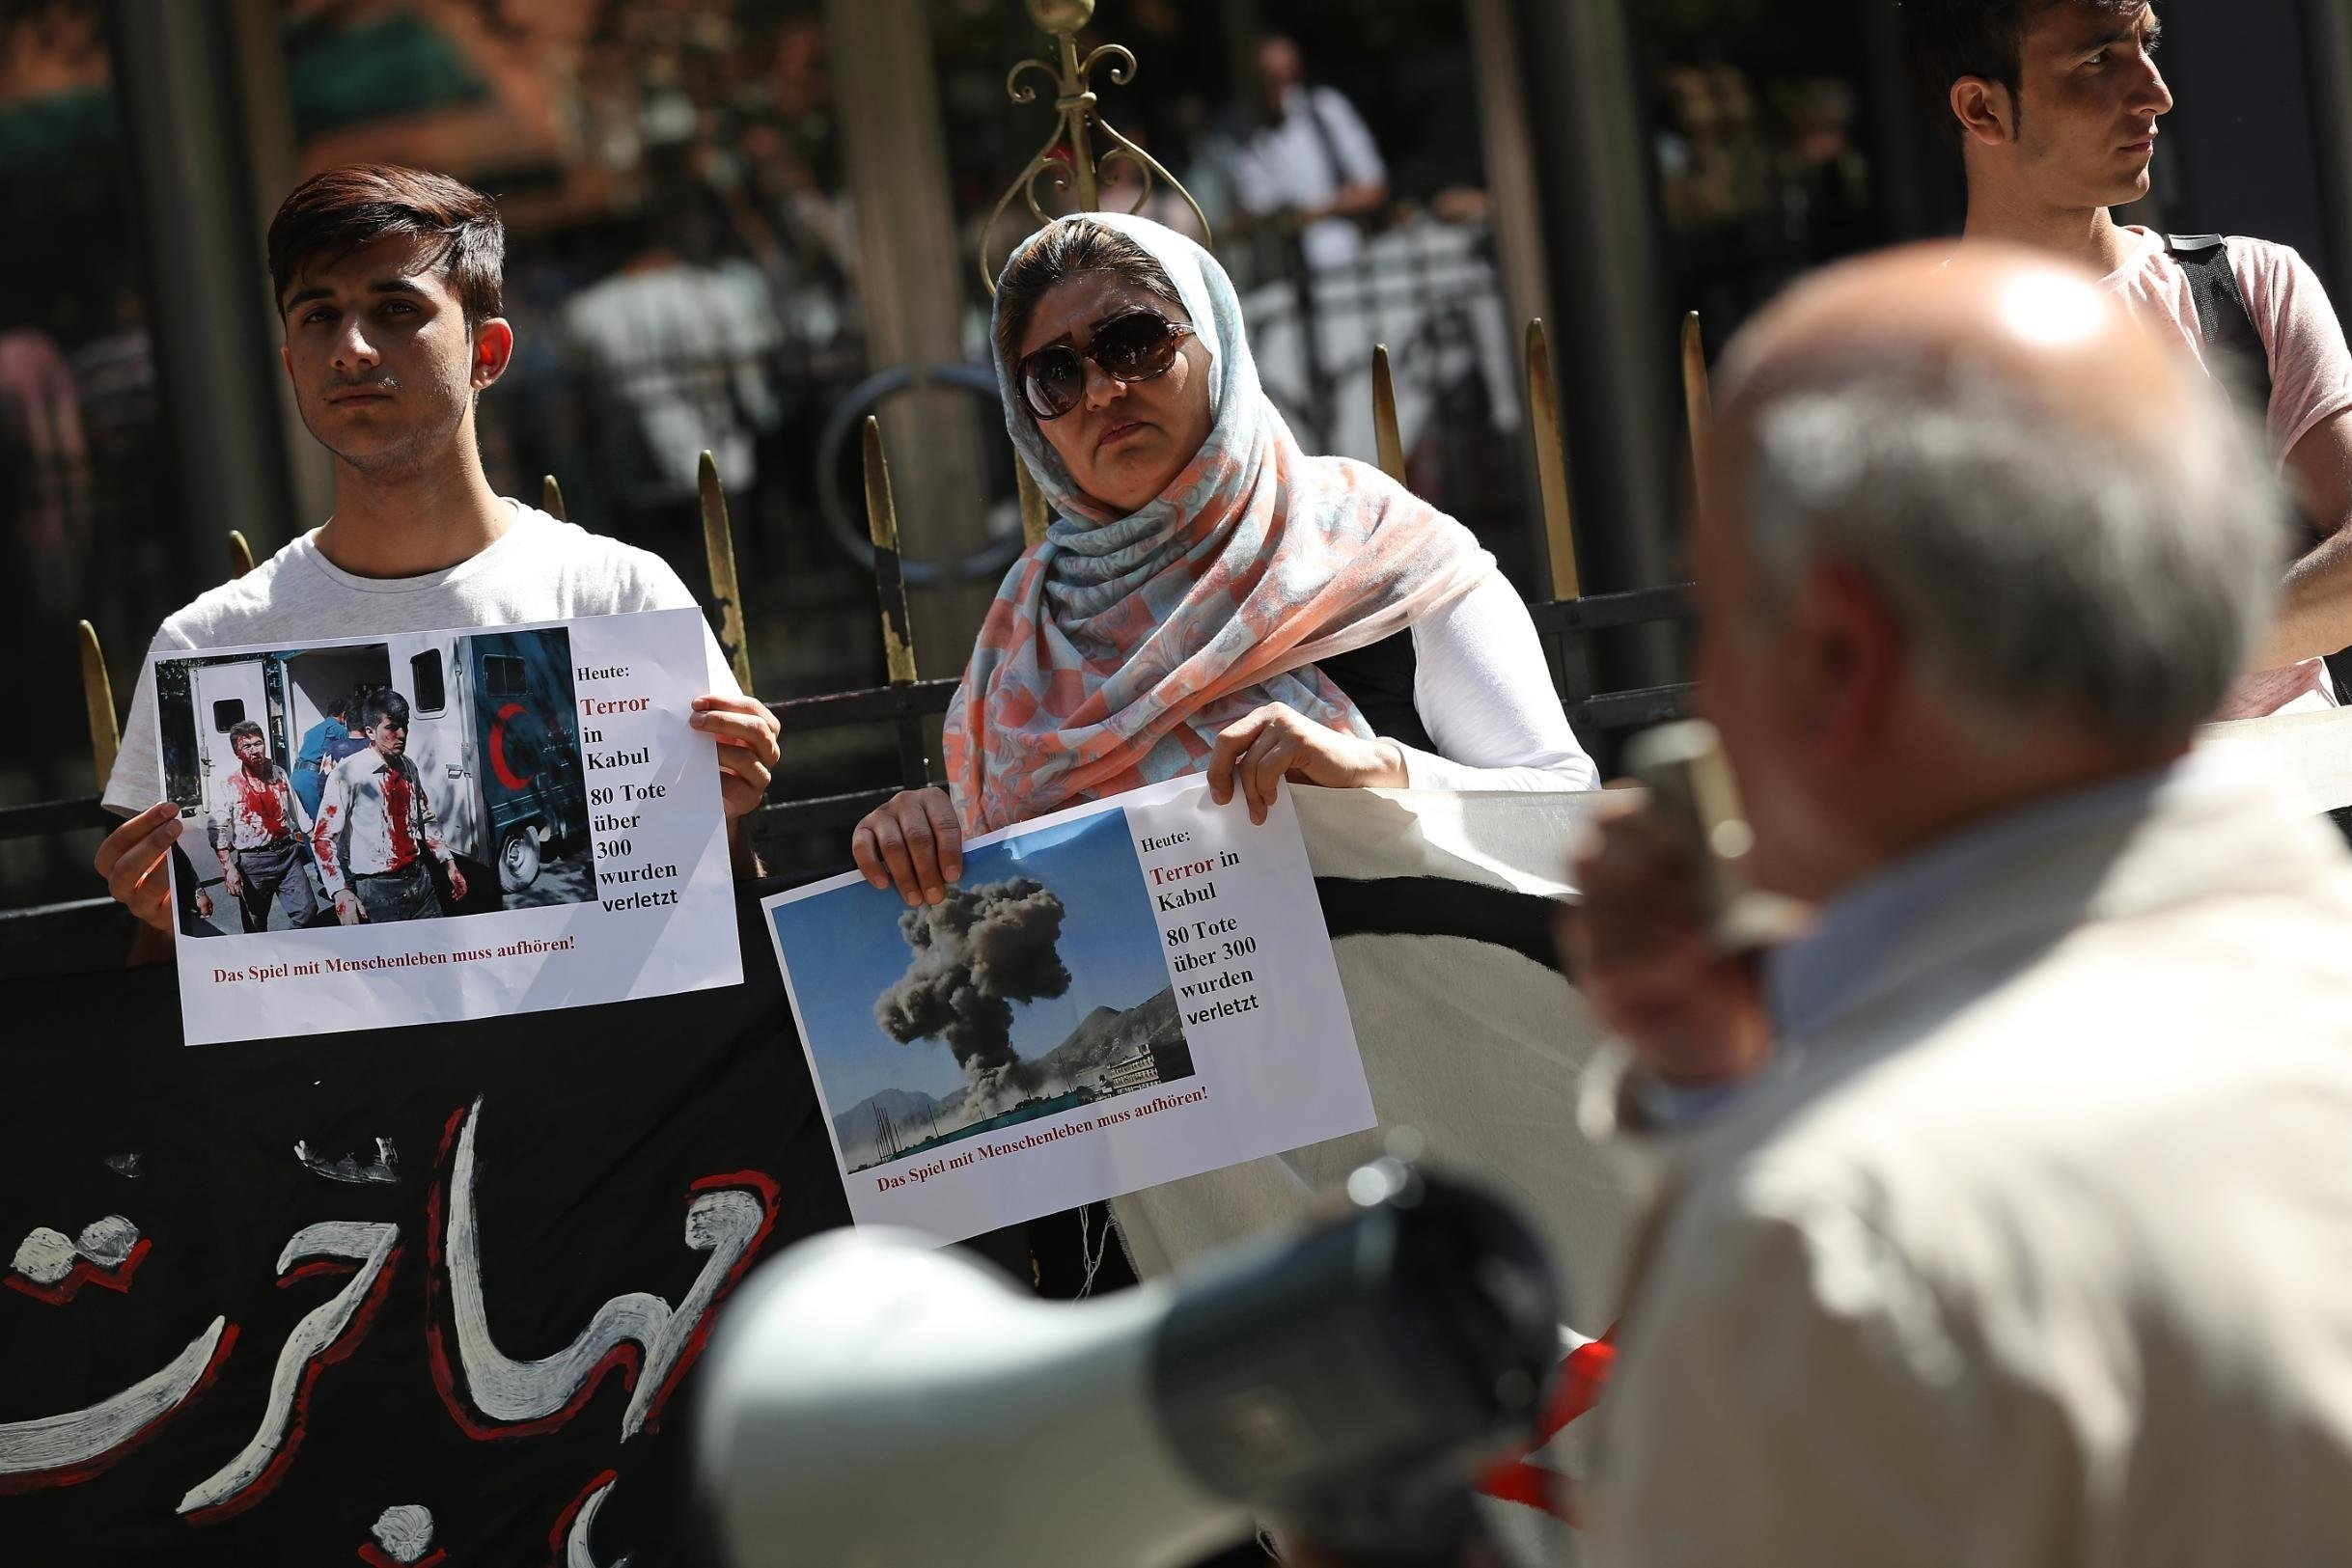 Afghans protesting against deportations in Berlin in May 2017 hold up photos of a bombing in Kabul.